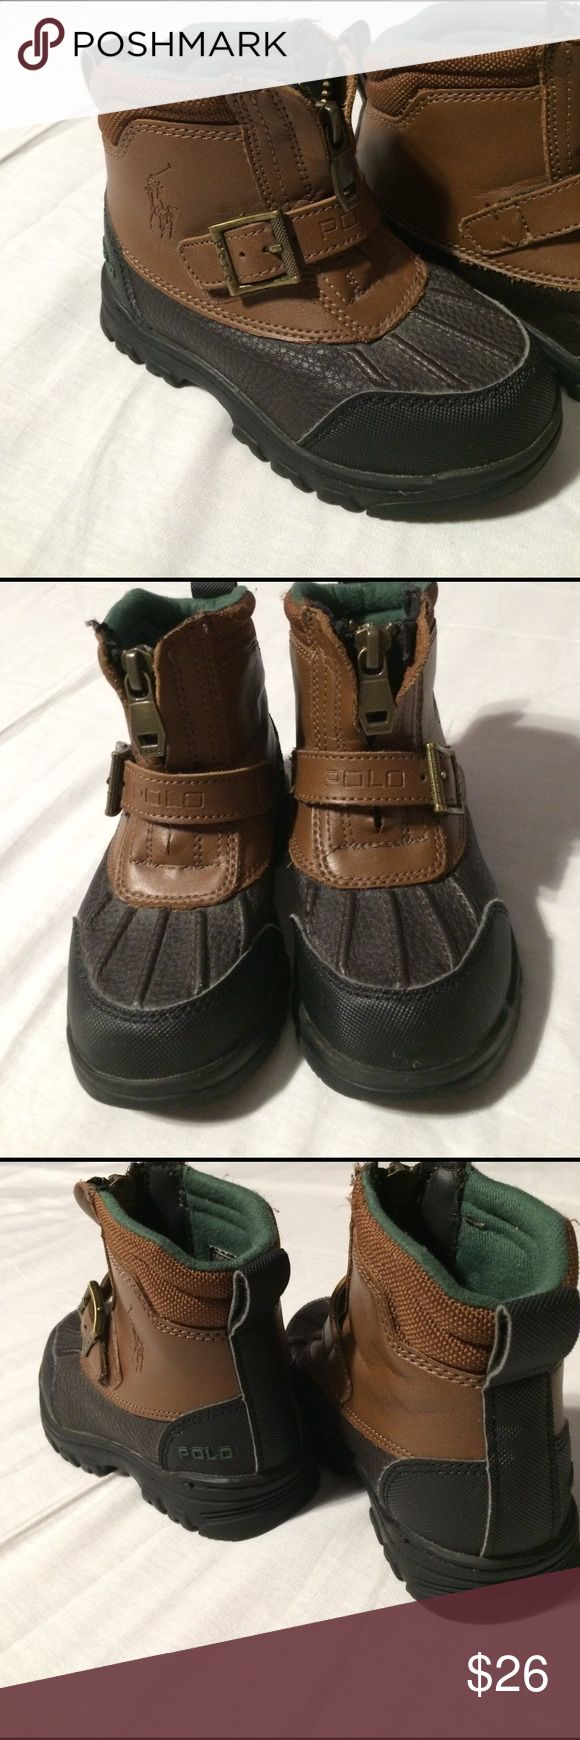 Kids POLO Ralph Lauren duck boots! Sz.8! Clean! Super Clean brown and black polo Ralph Lauren kids duck boots! In great condition! No signs of heavy wear! Zippers and buckles are mint! Soles have no wear and are perfect! Condition: 10/10 Sz. 8 kids! Polo by Ralph Lauren Shoes Boots